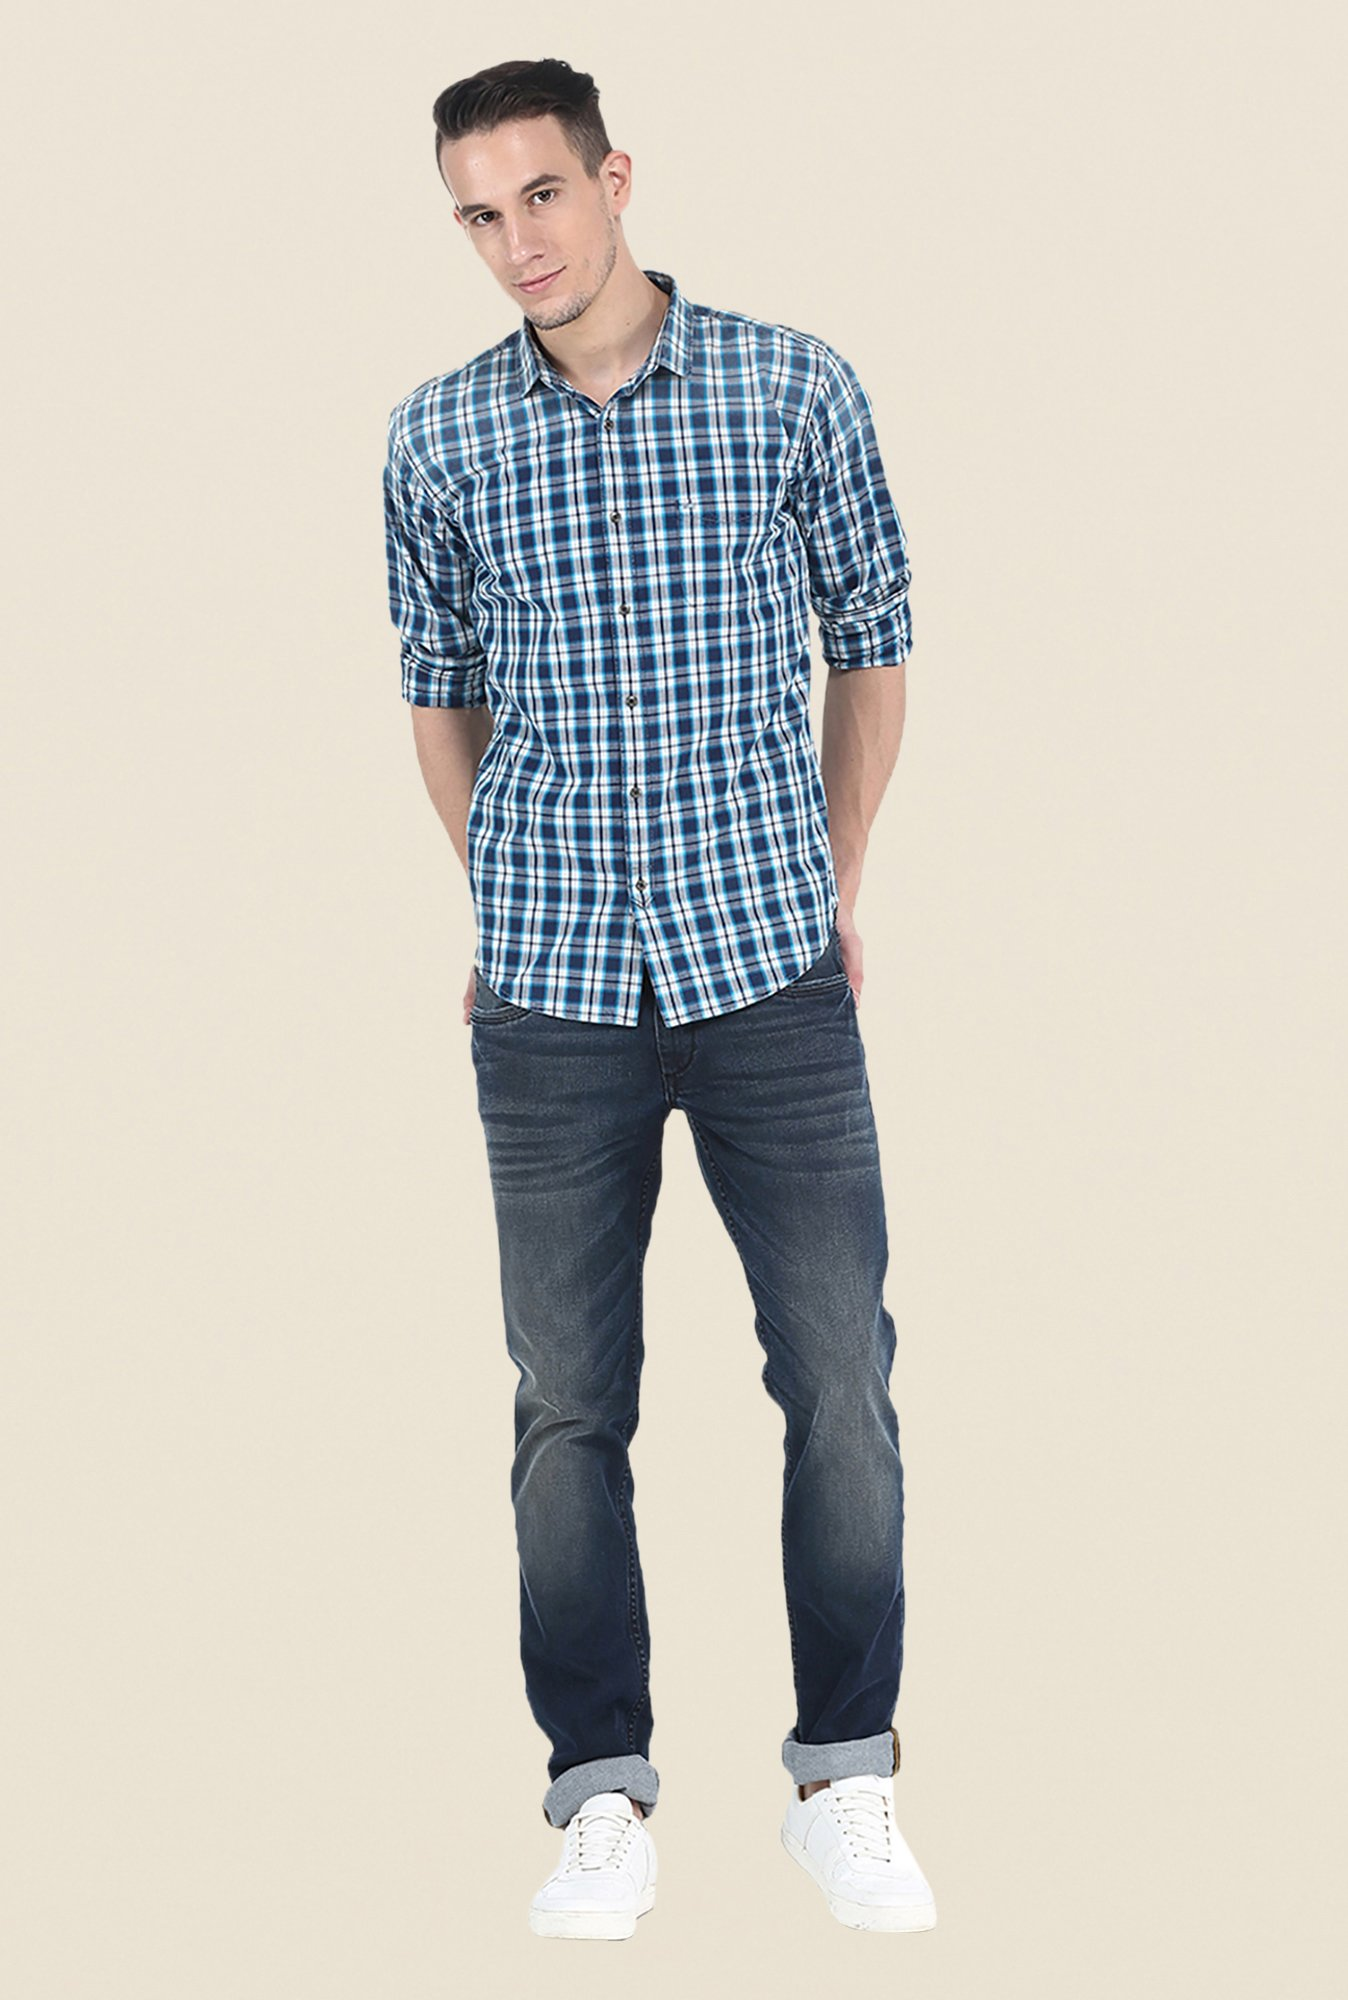 Basics Navy Checks Slim Fit Full Sleeve Shirt